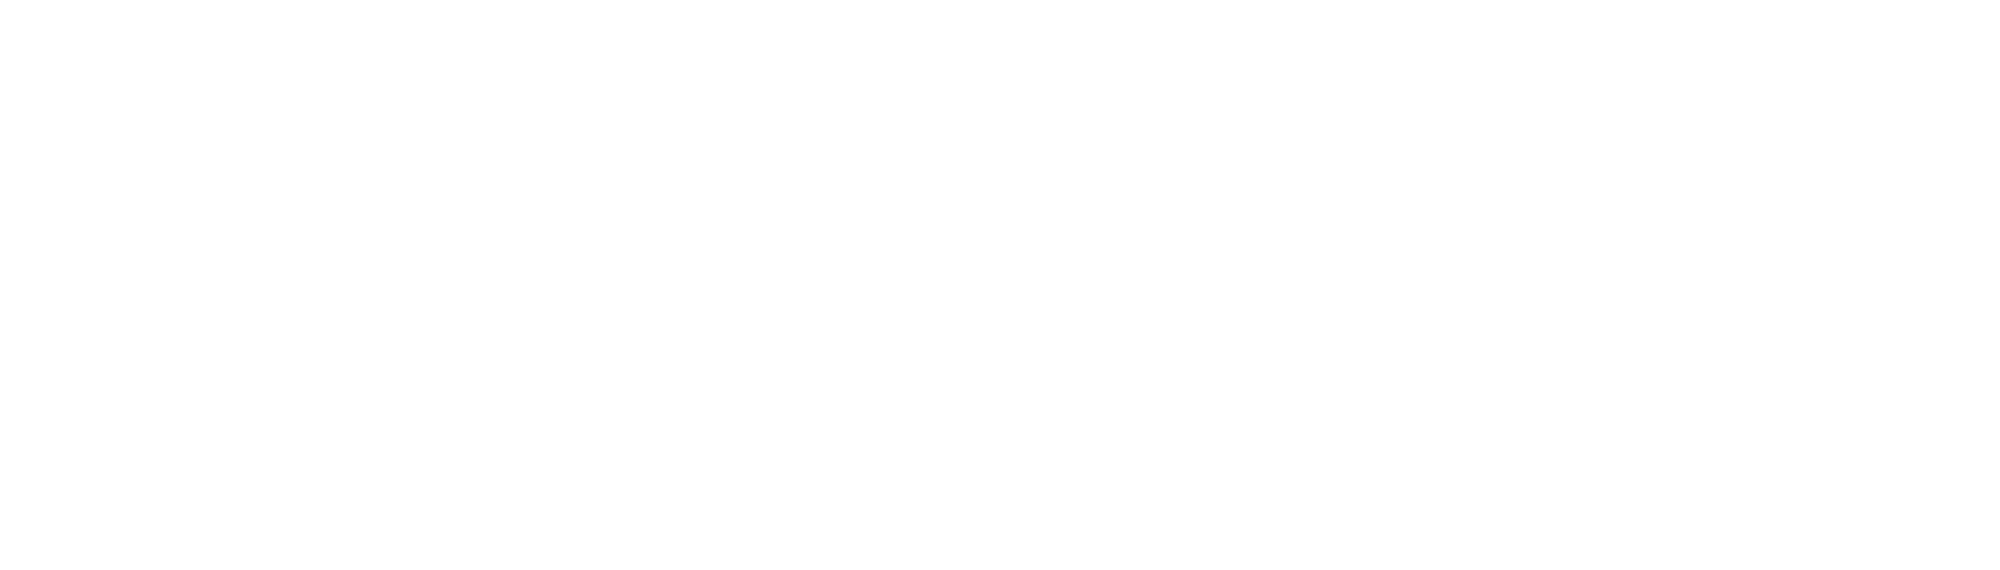 Rare Car Sales | Classic, Rare & Unique Car Sales Australia